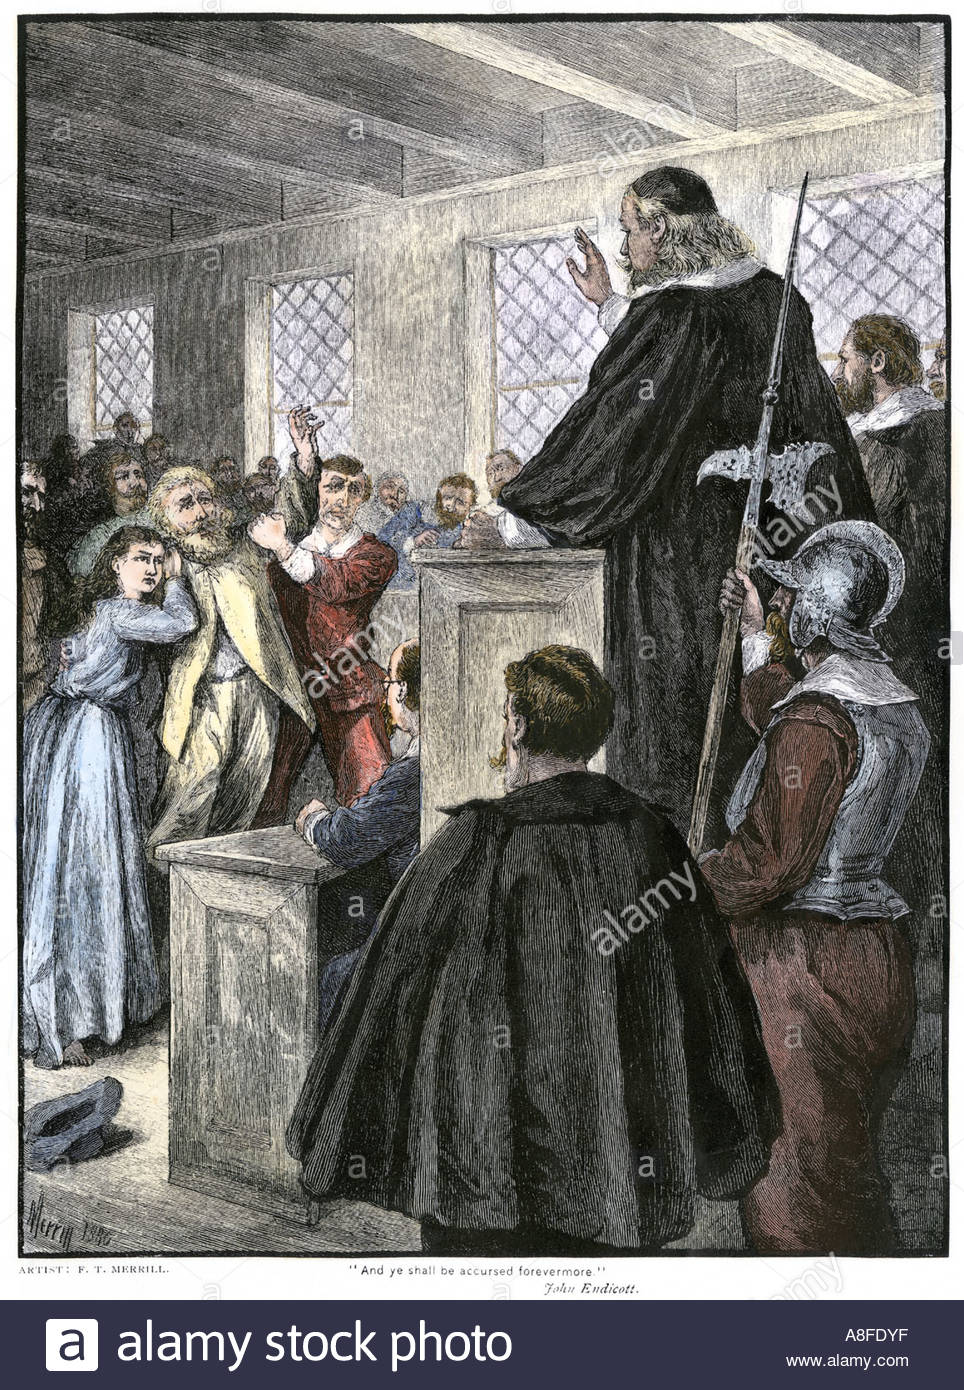 Guilty verdict pronounced at the Salem witch trials in